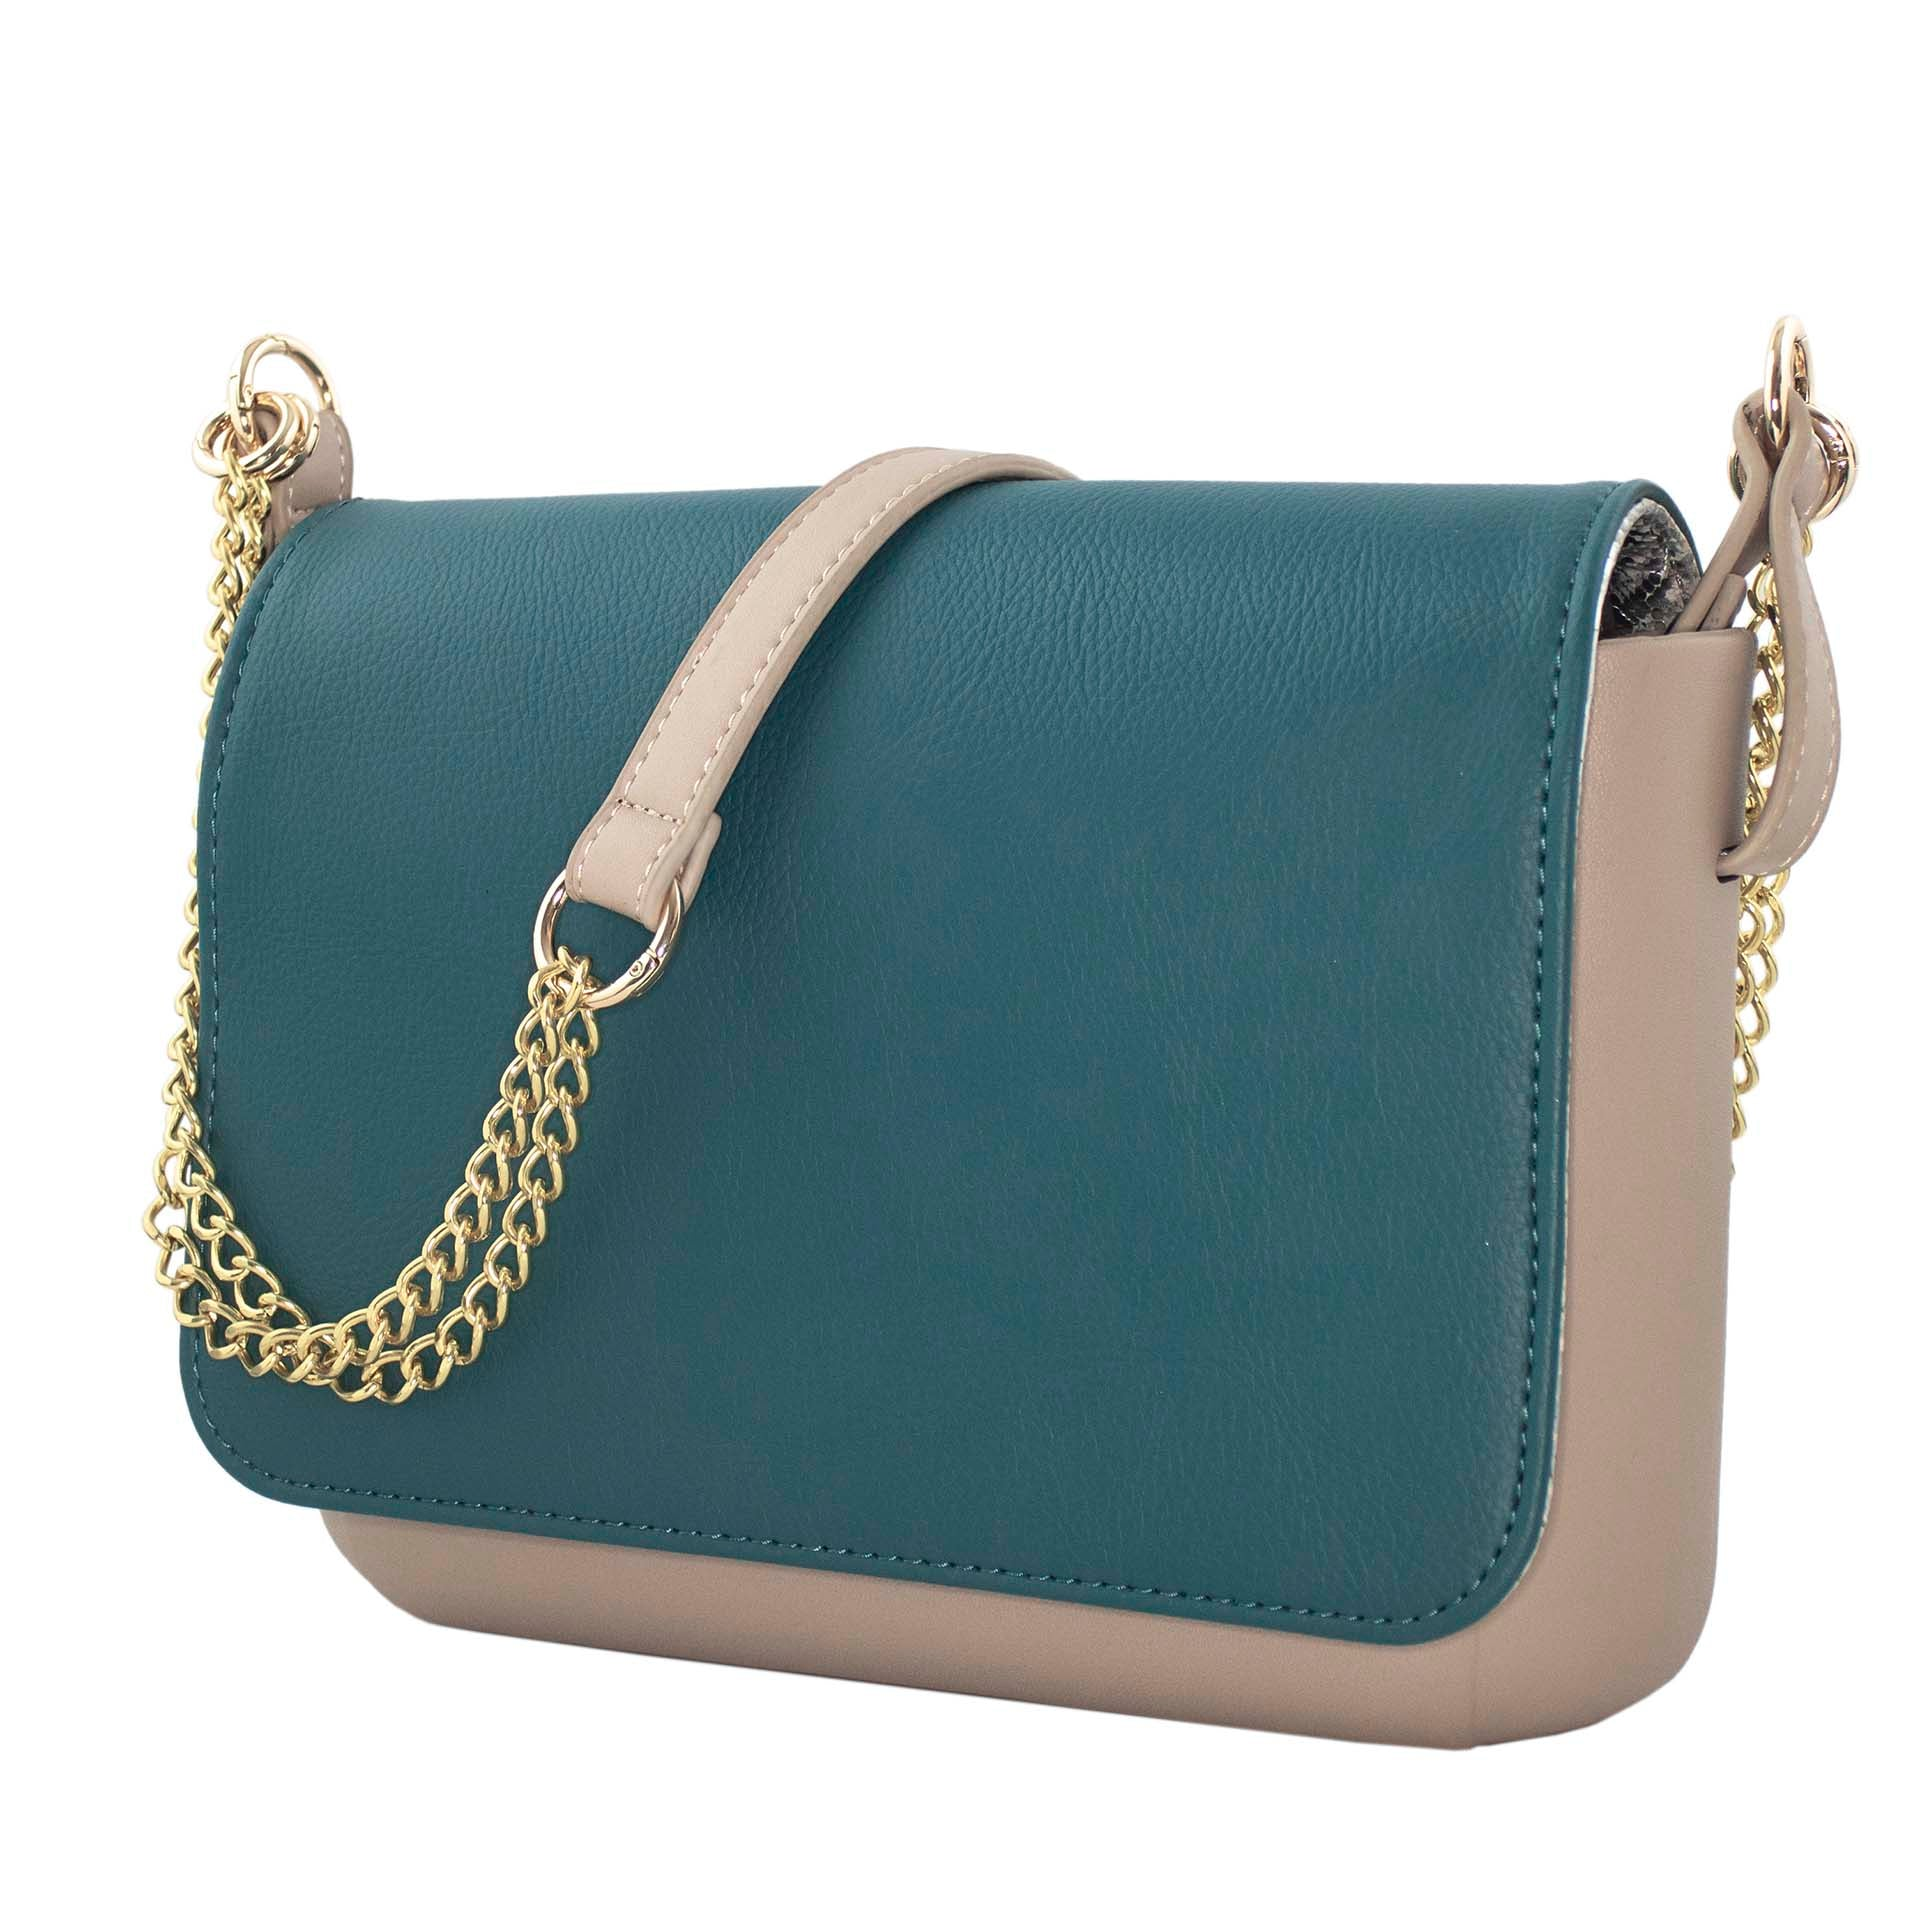 Beige, gold, and dark teal crossbody purse with interchangeable pieces and built-in wireless charging.